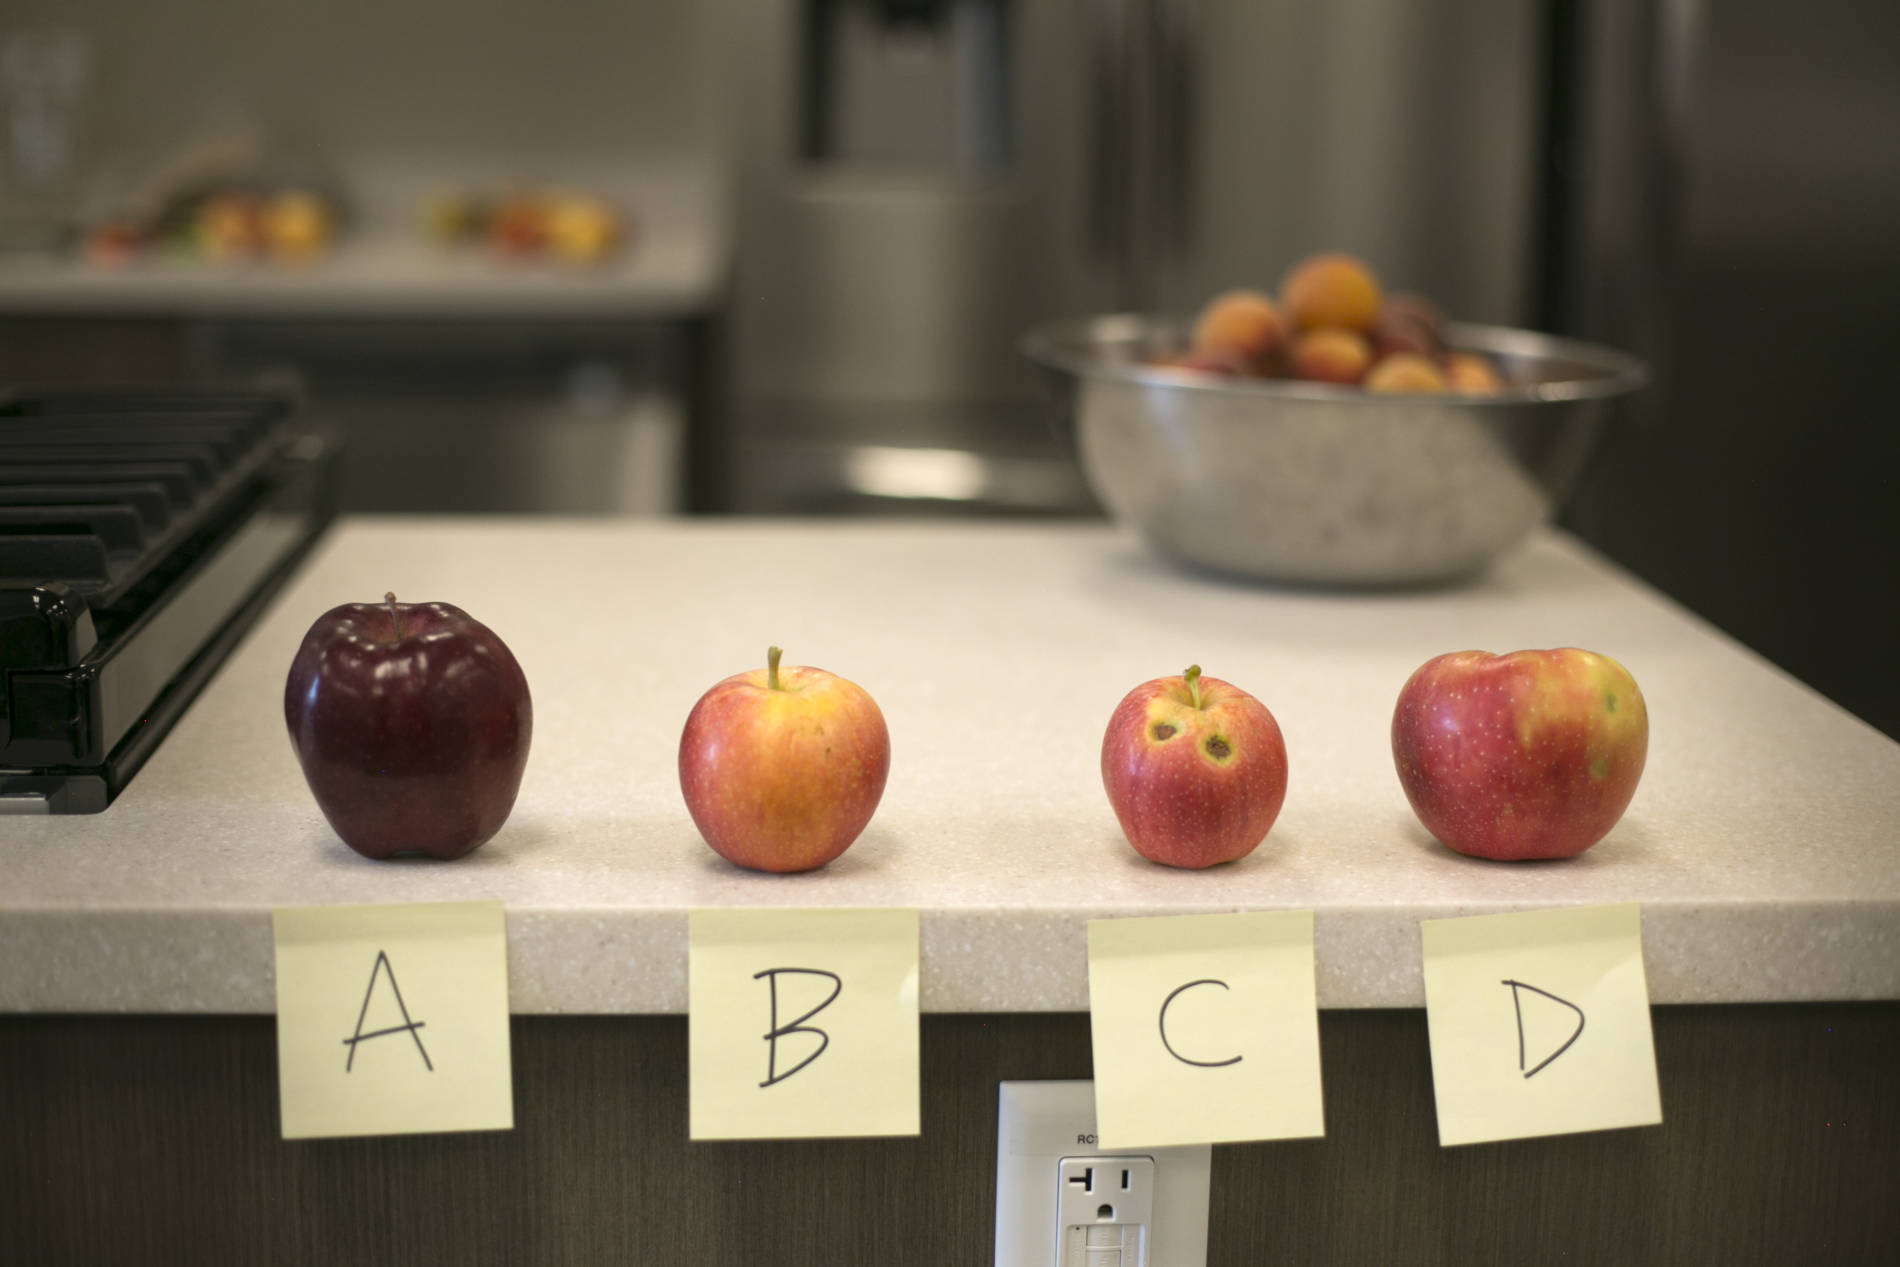 Four varieties of apples labeled A-D